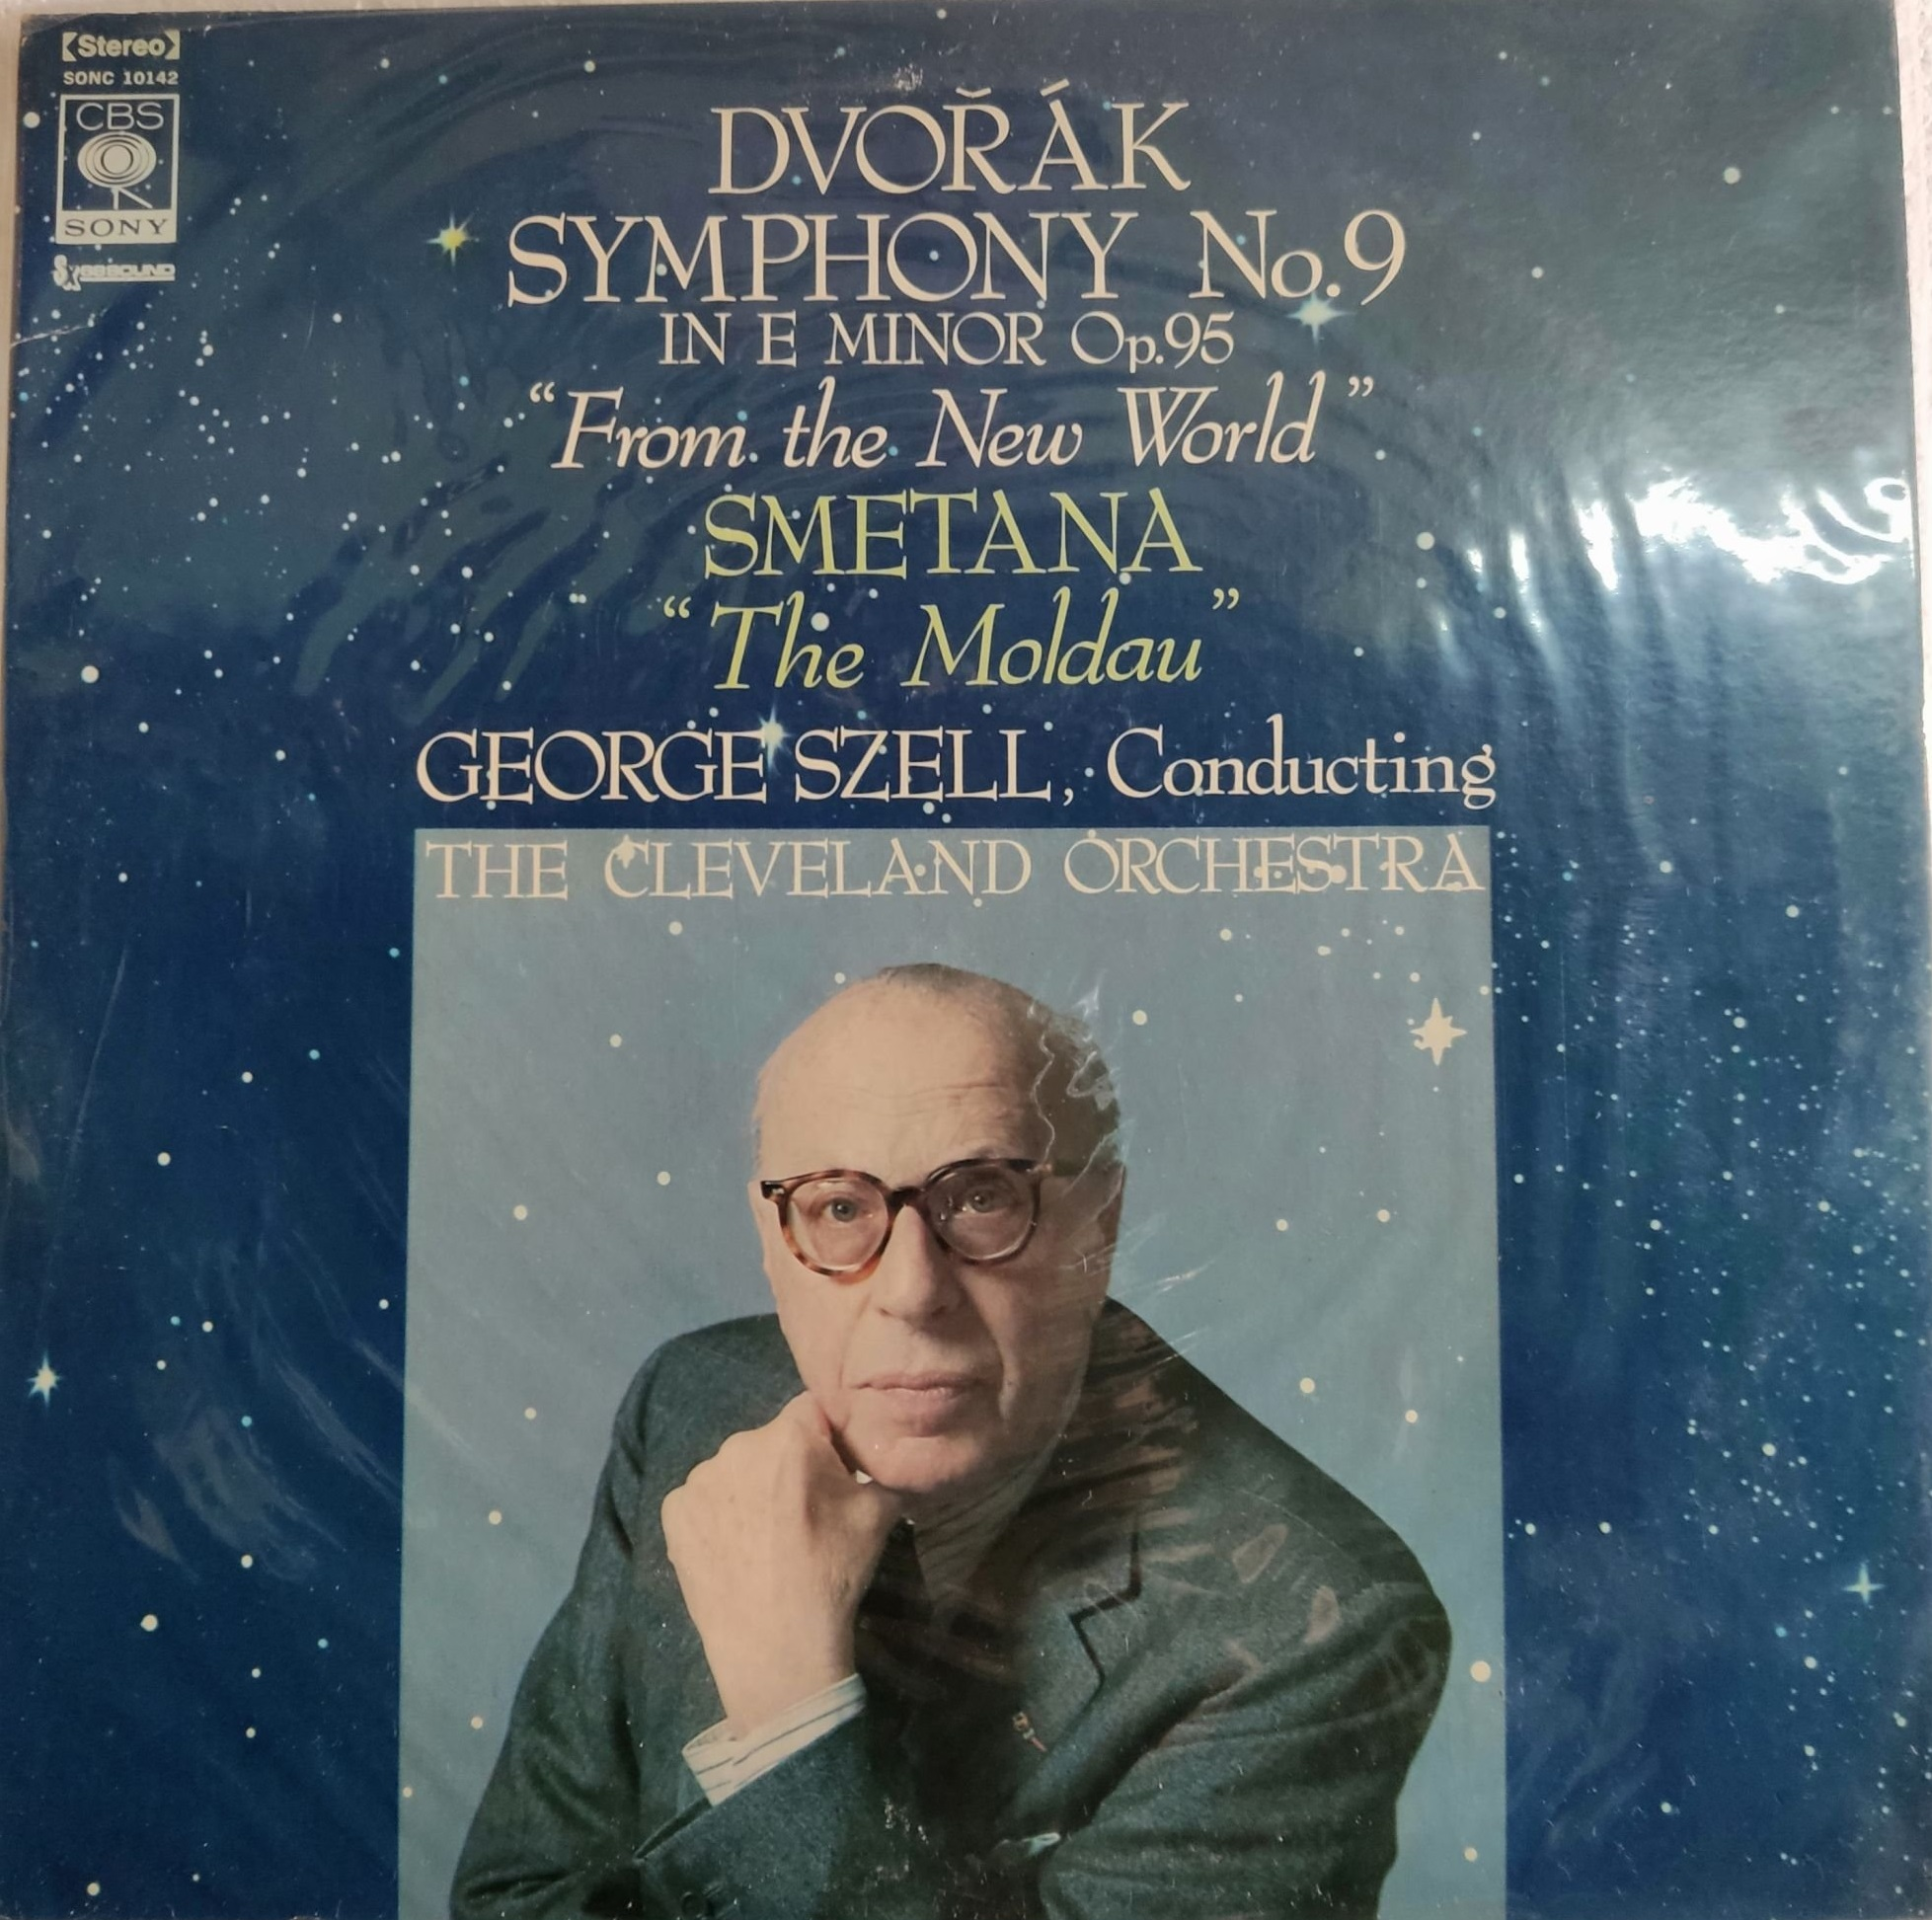 Antonin Dvorak 'George Szell Conducting'Symphonies N 9'From The New World' LP2/2001/Classic/Japan/Nm